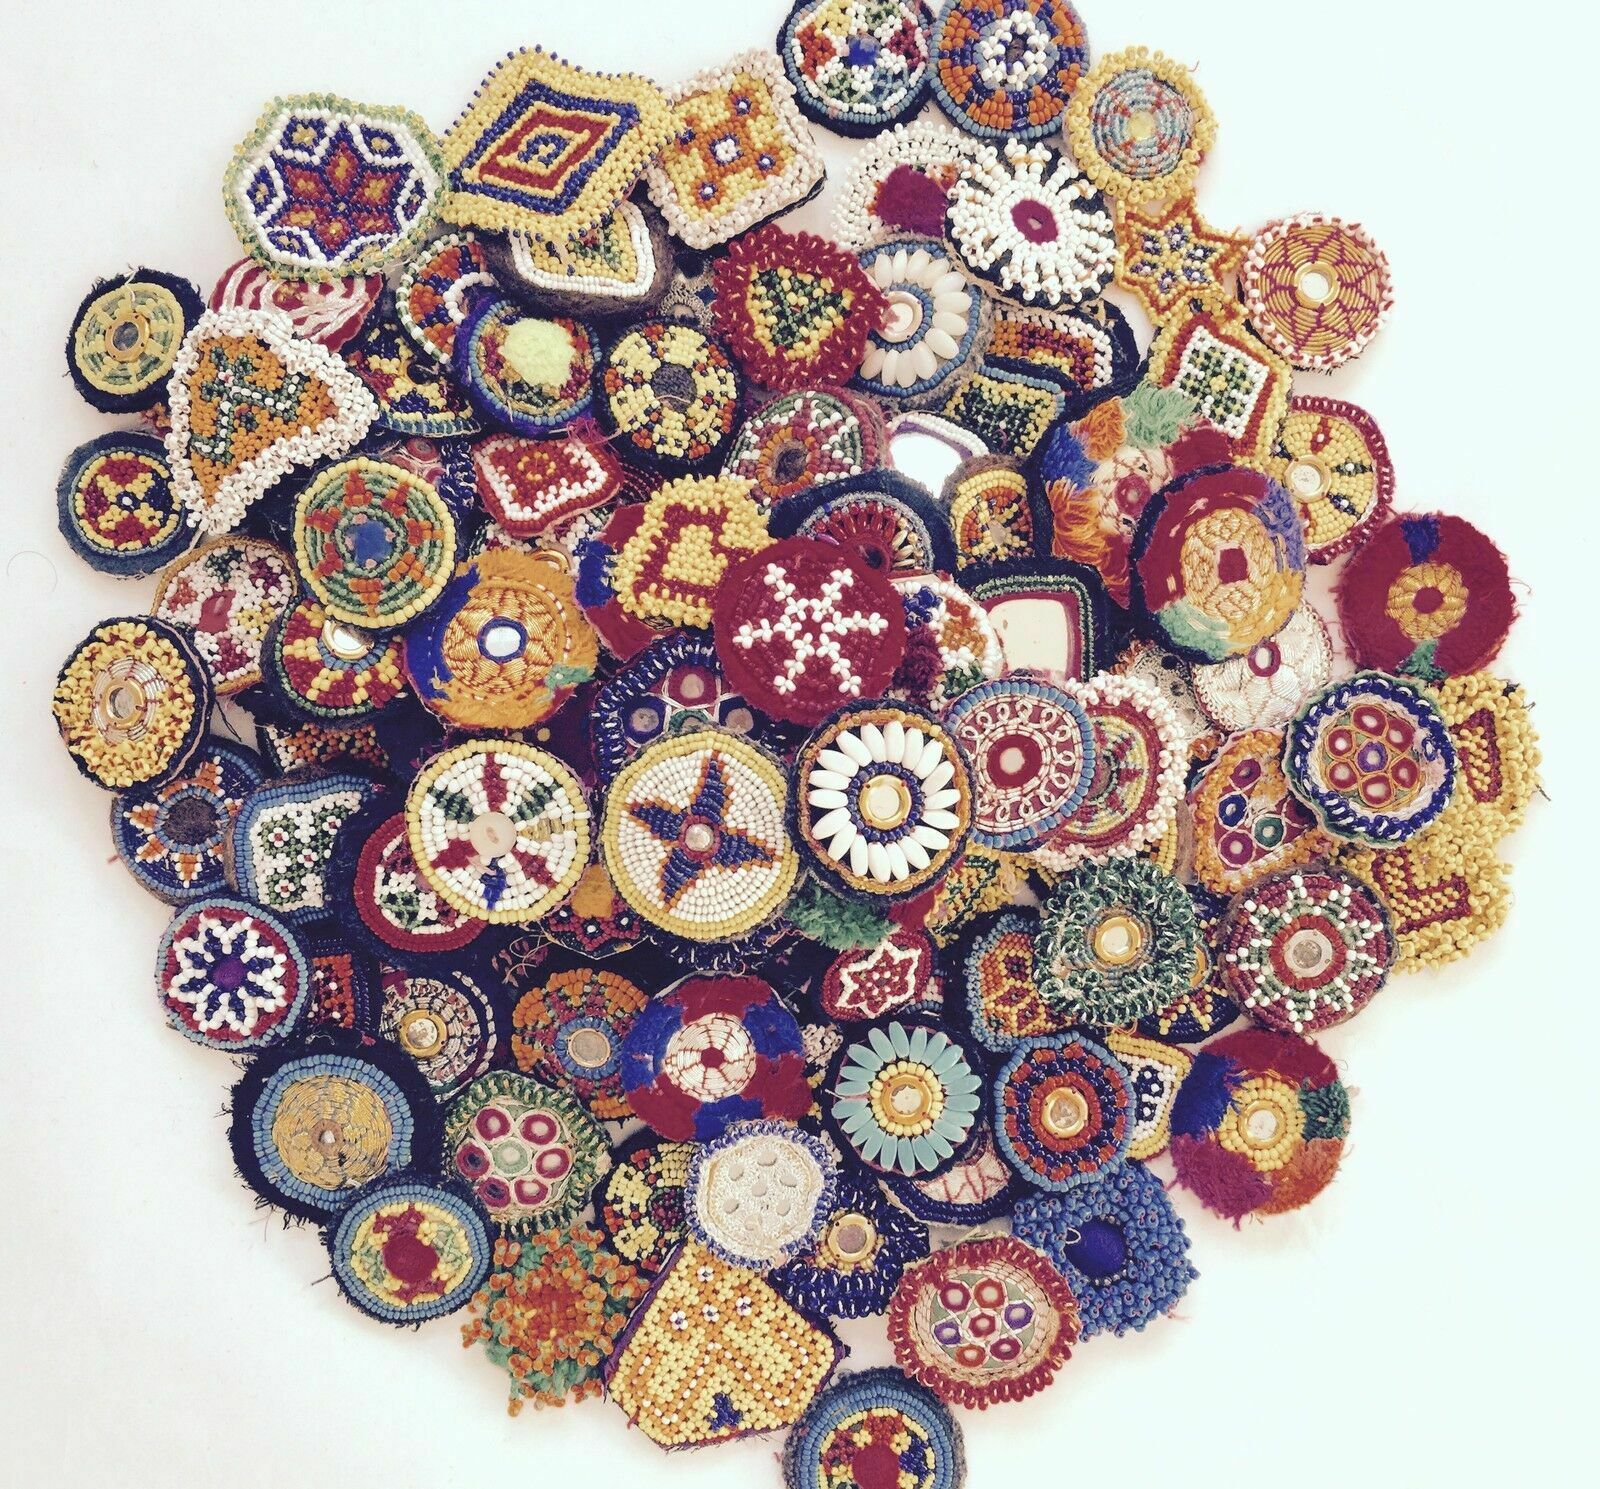 Small Kuchi Afghan Tribal Beaded Medallion 40 Pakistan Medals Patches Gypsy Art